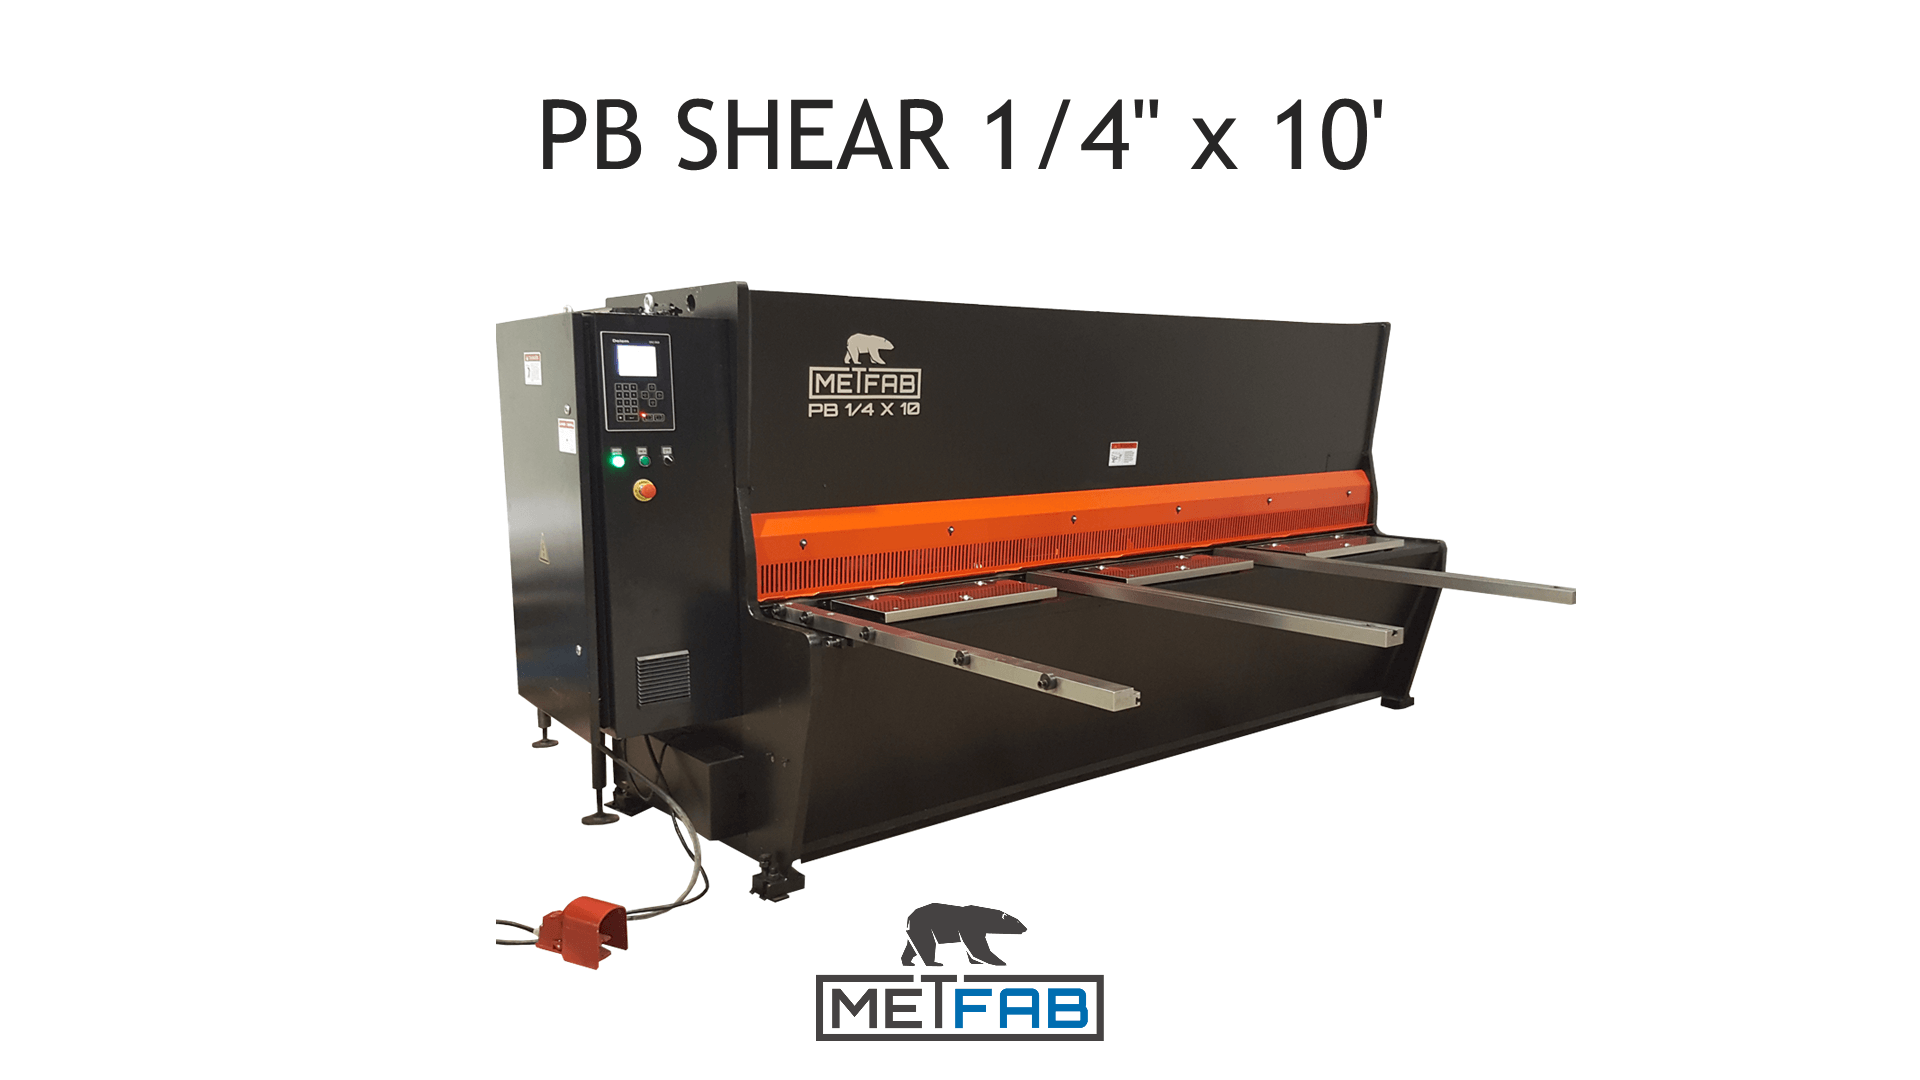 Shear video PB Series Metfab